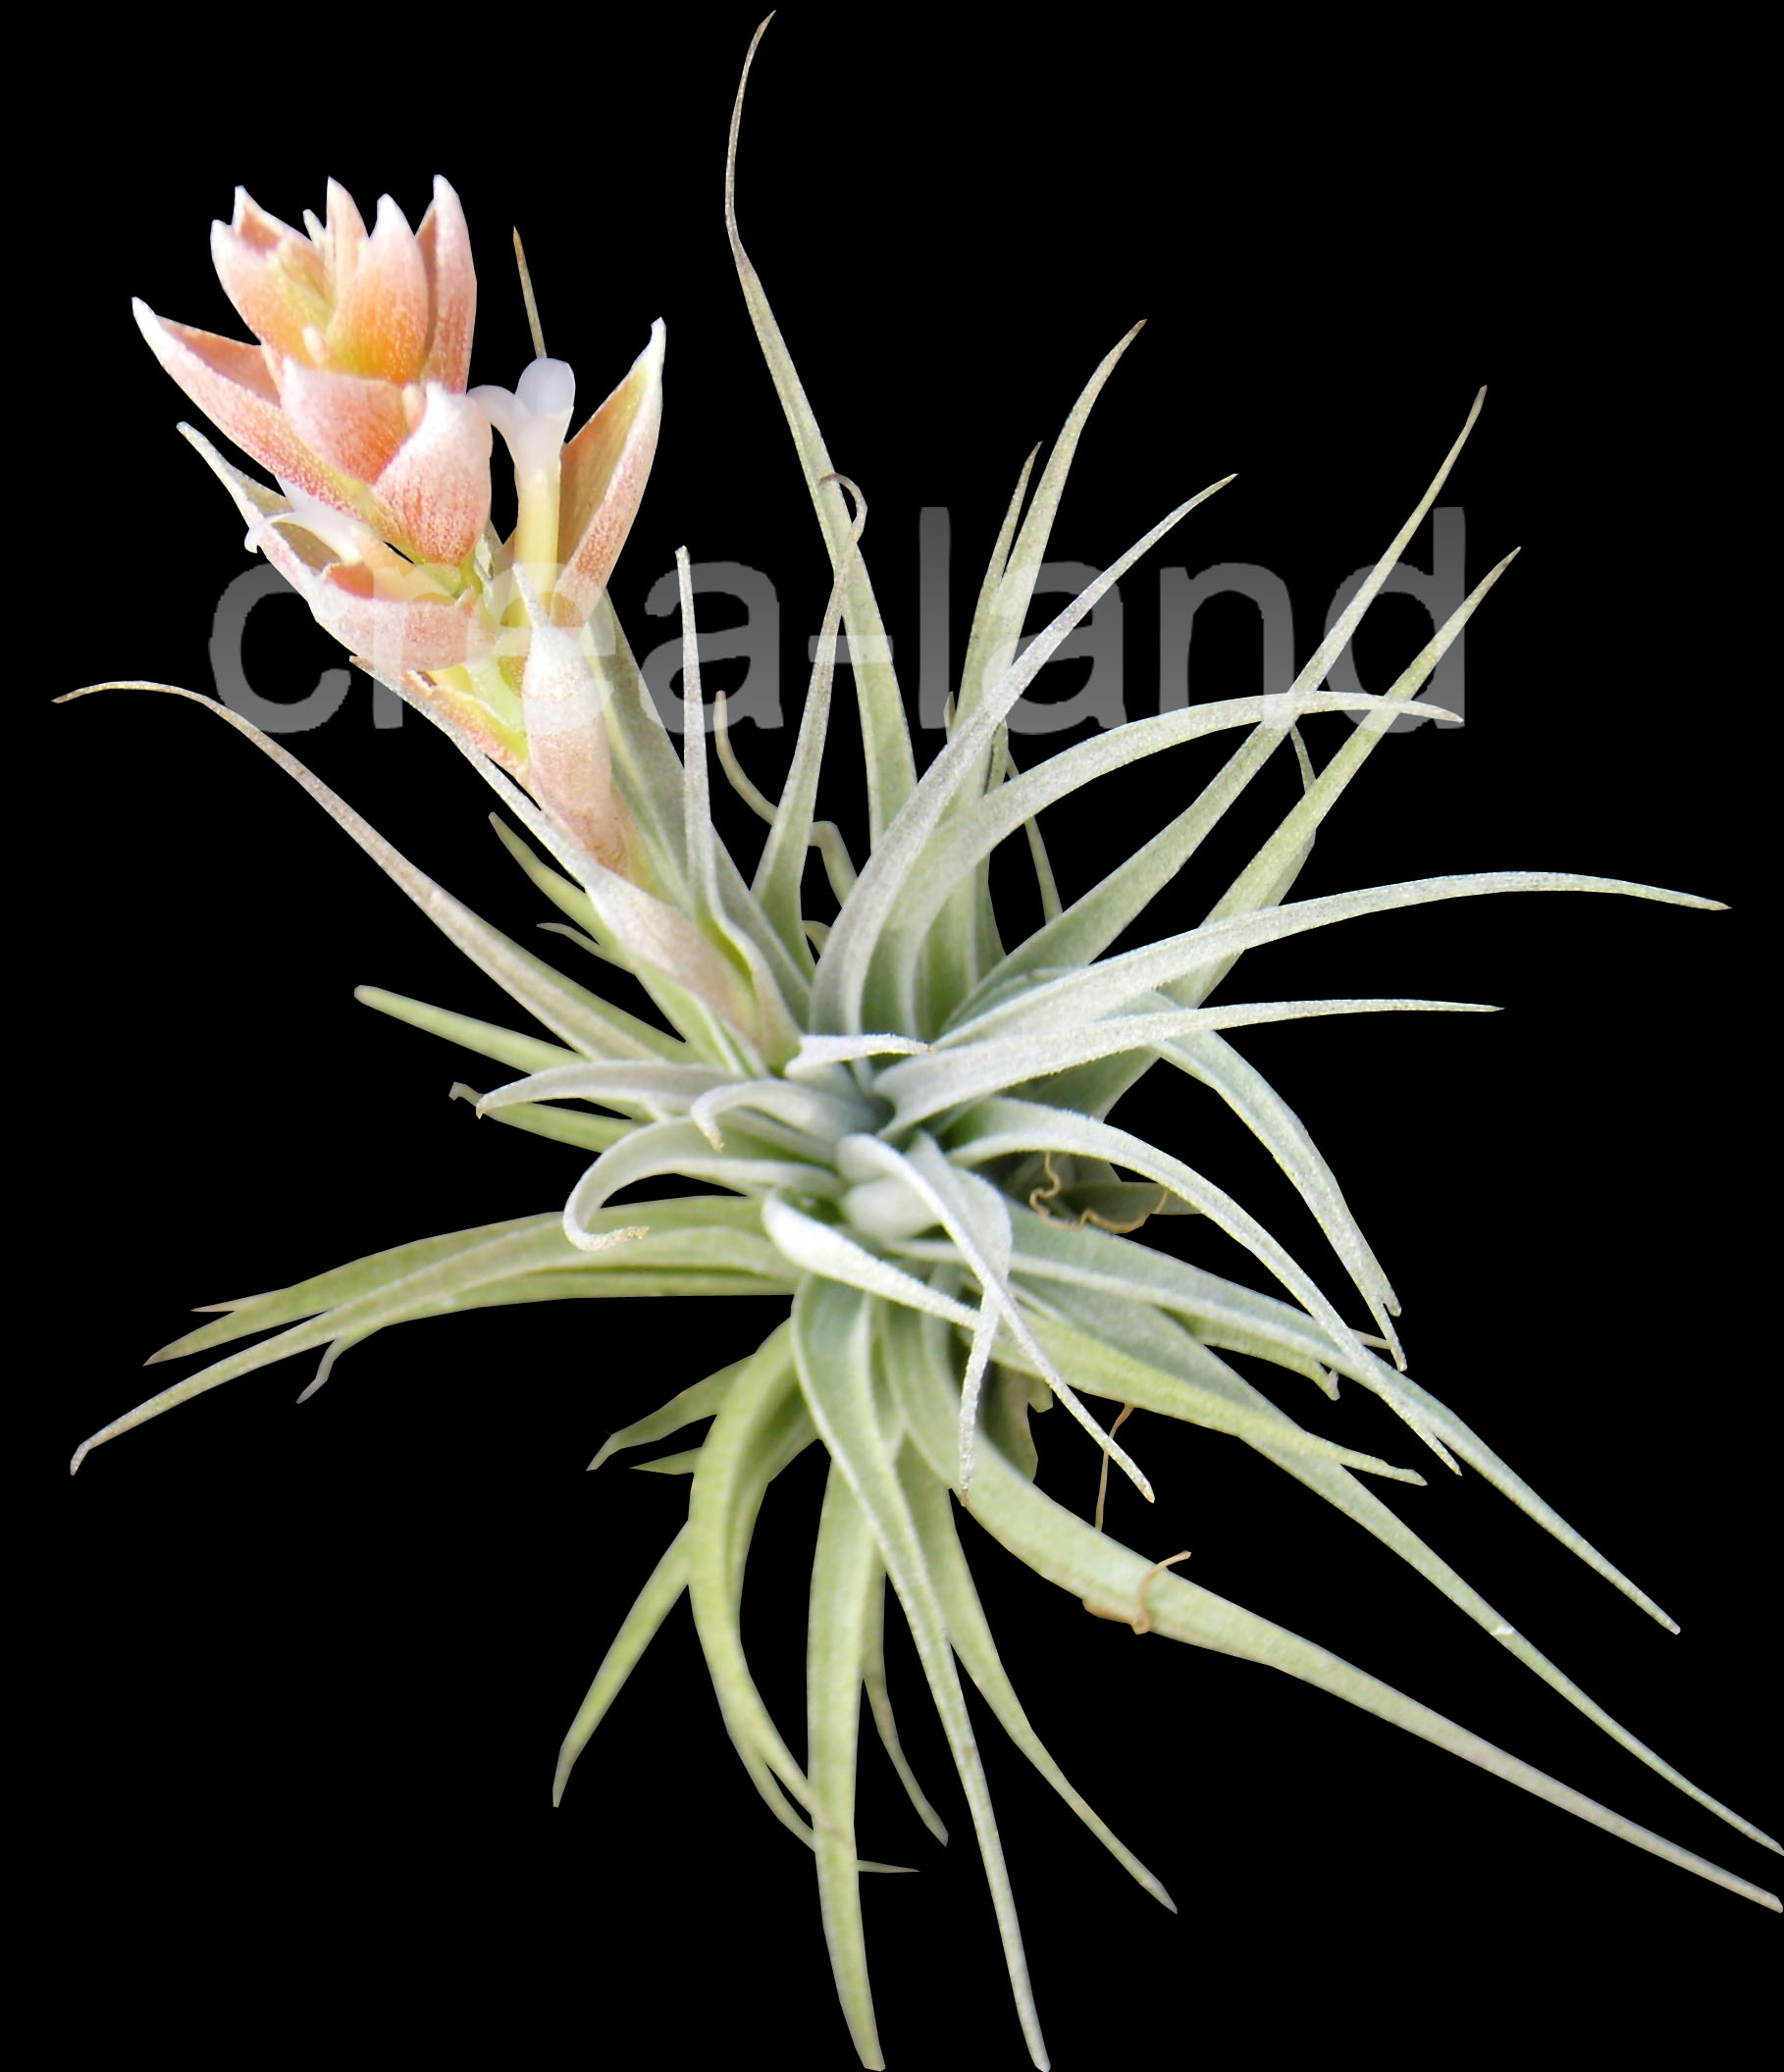 tillandsia pohliana plante sans terre entretien et id es cadeau. Black Bedroom Furniture Sets. Home Design Ideas